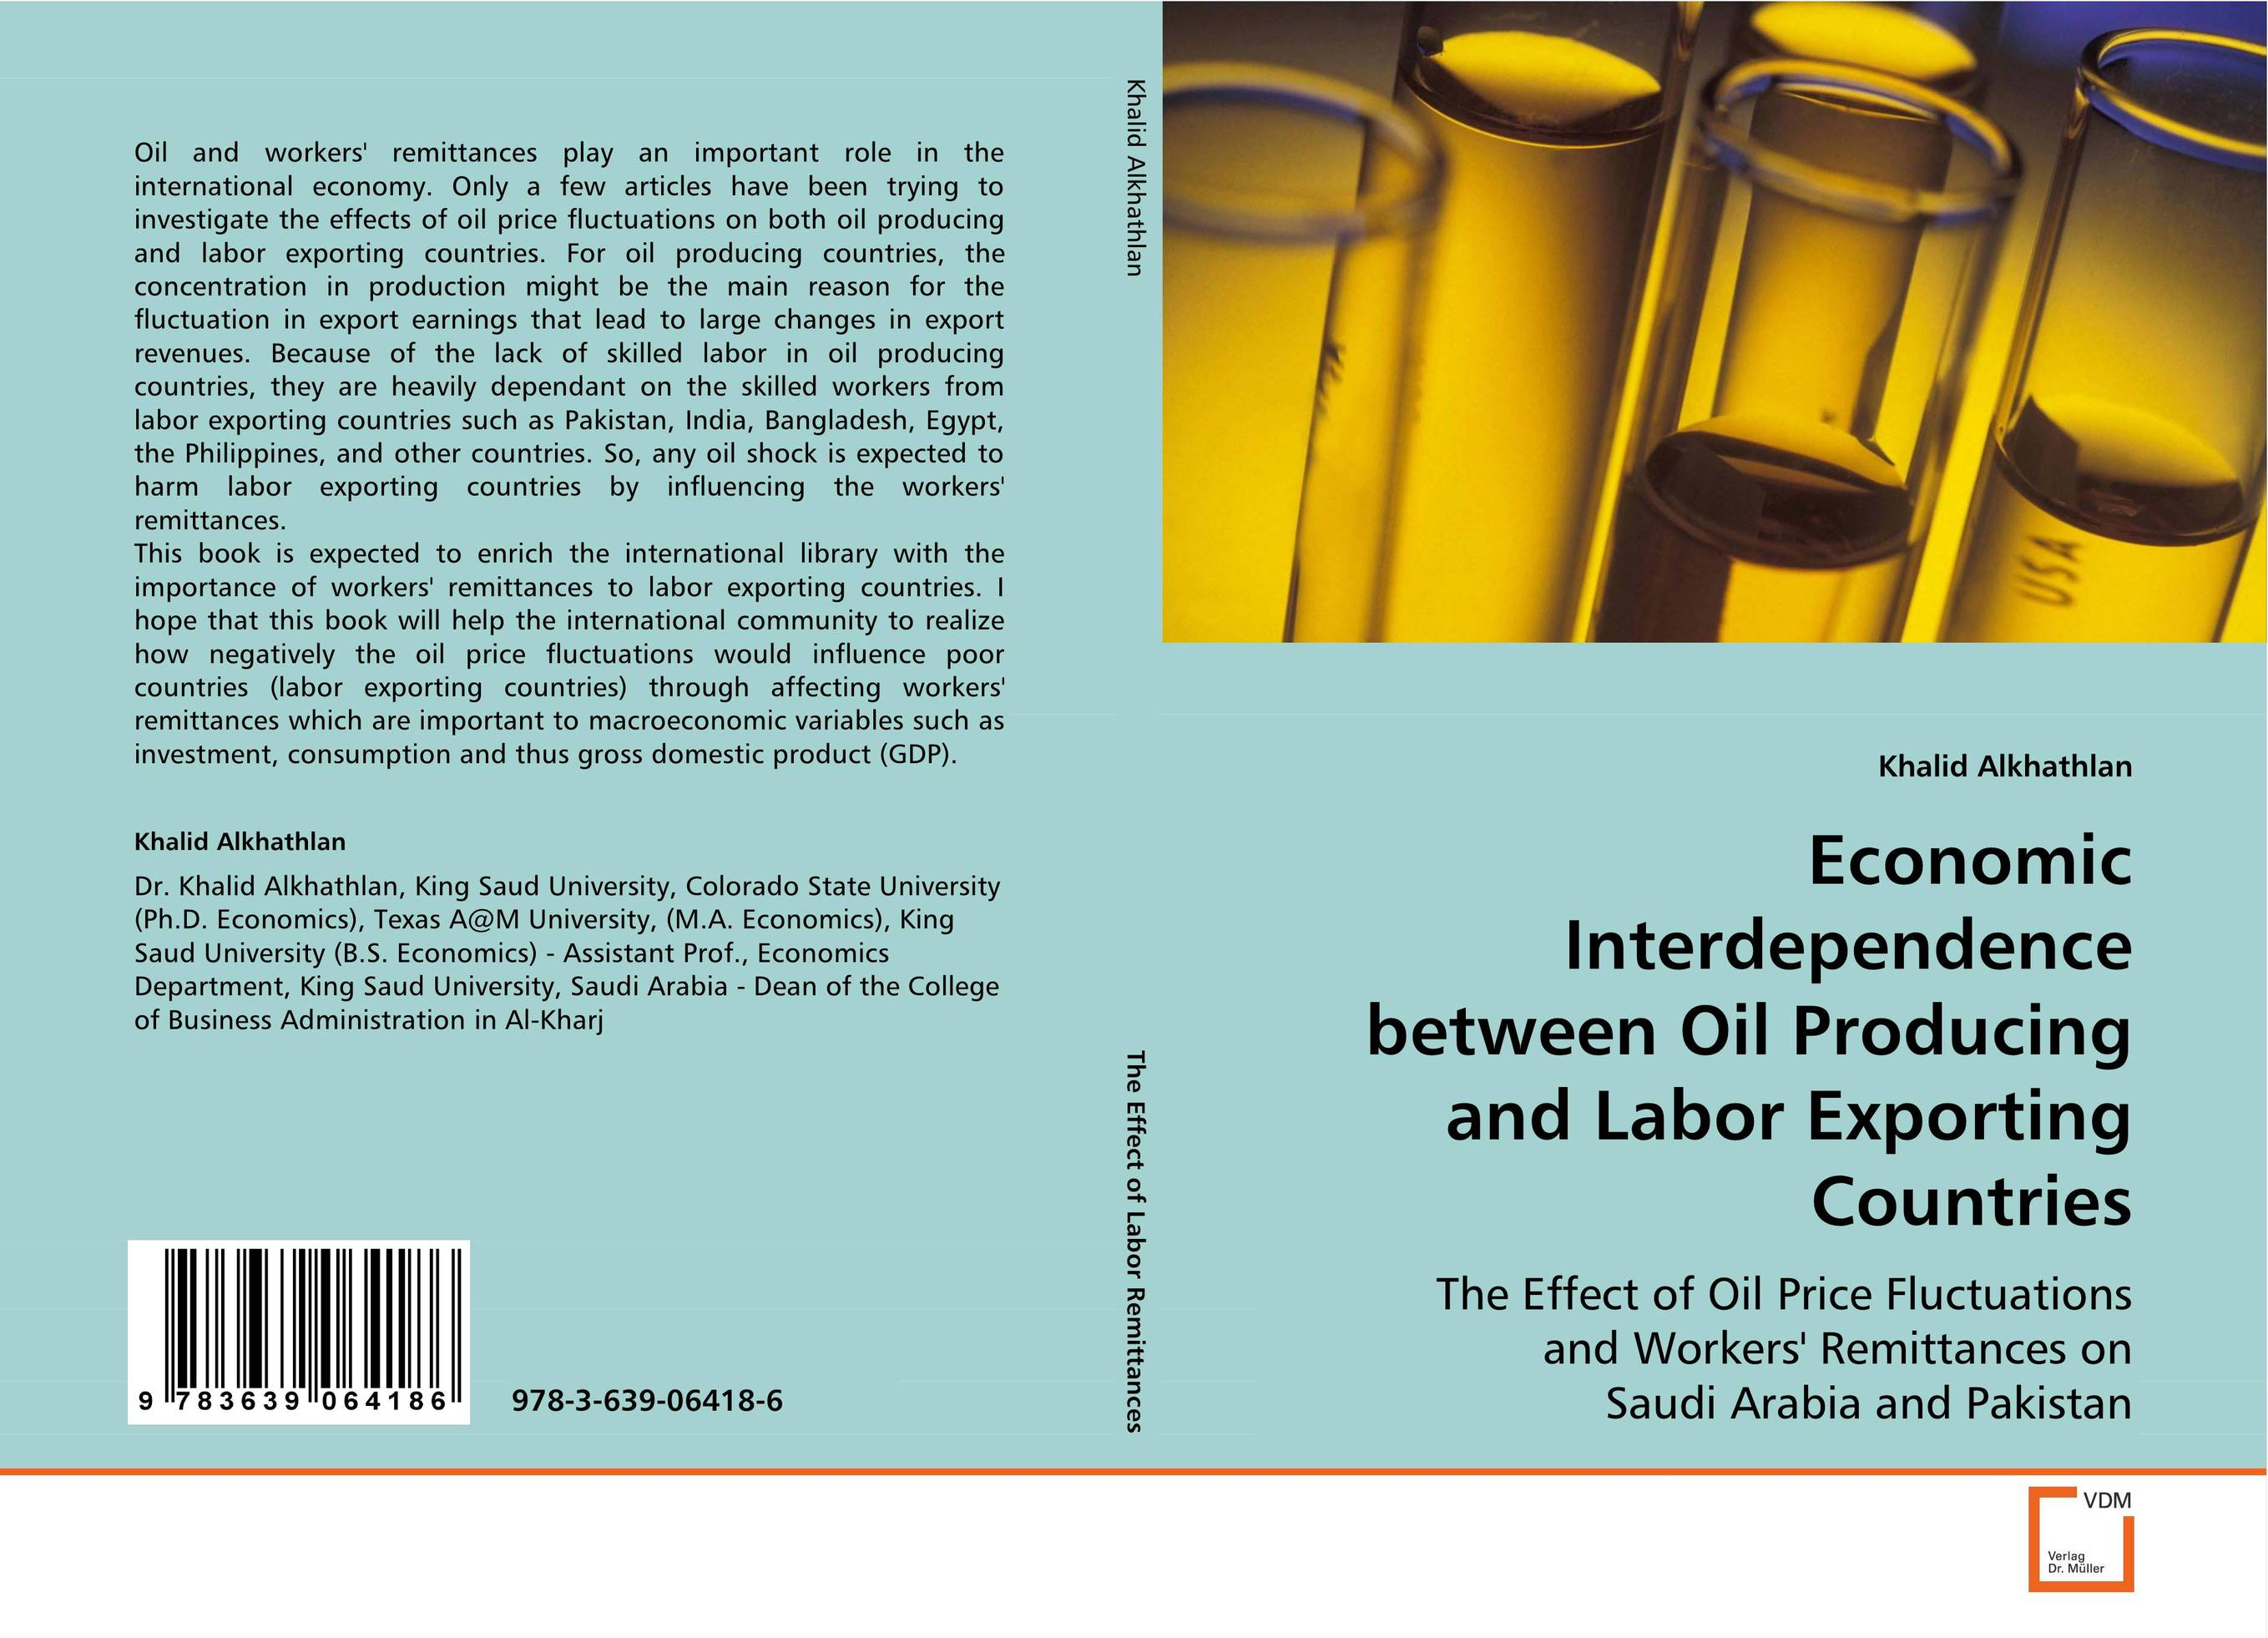 Economic Interdependence between Oil Producing andLabor Exporting Countries p b eregha energy consumption oil price and macroeconomic performance in energy dependent african countries